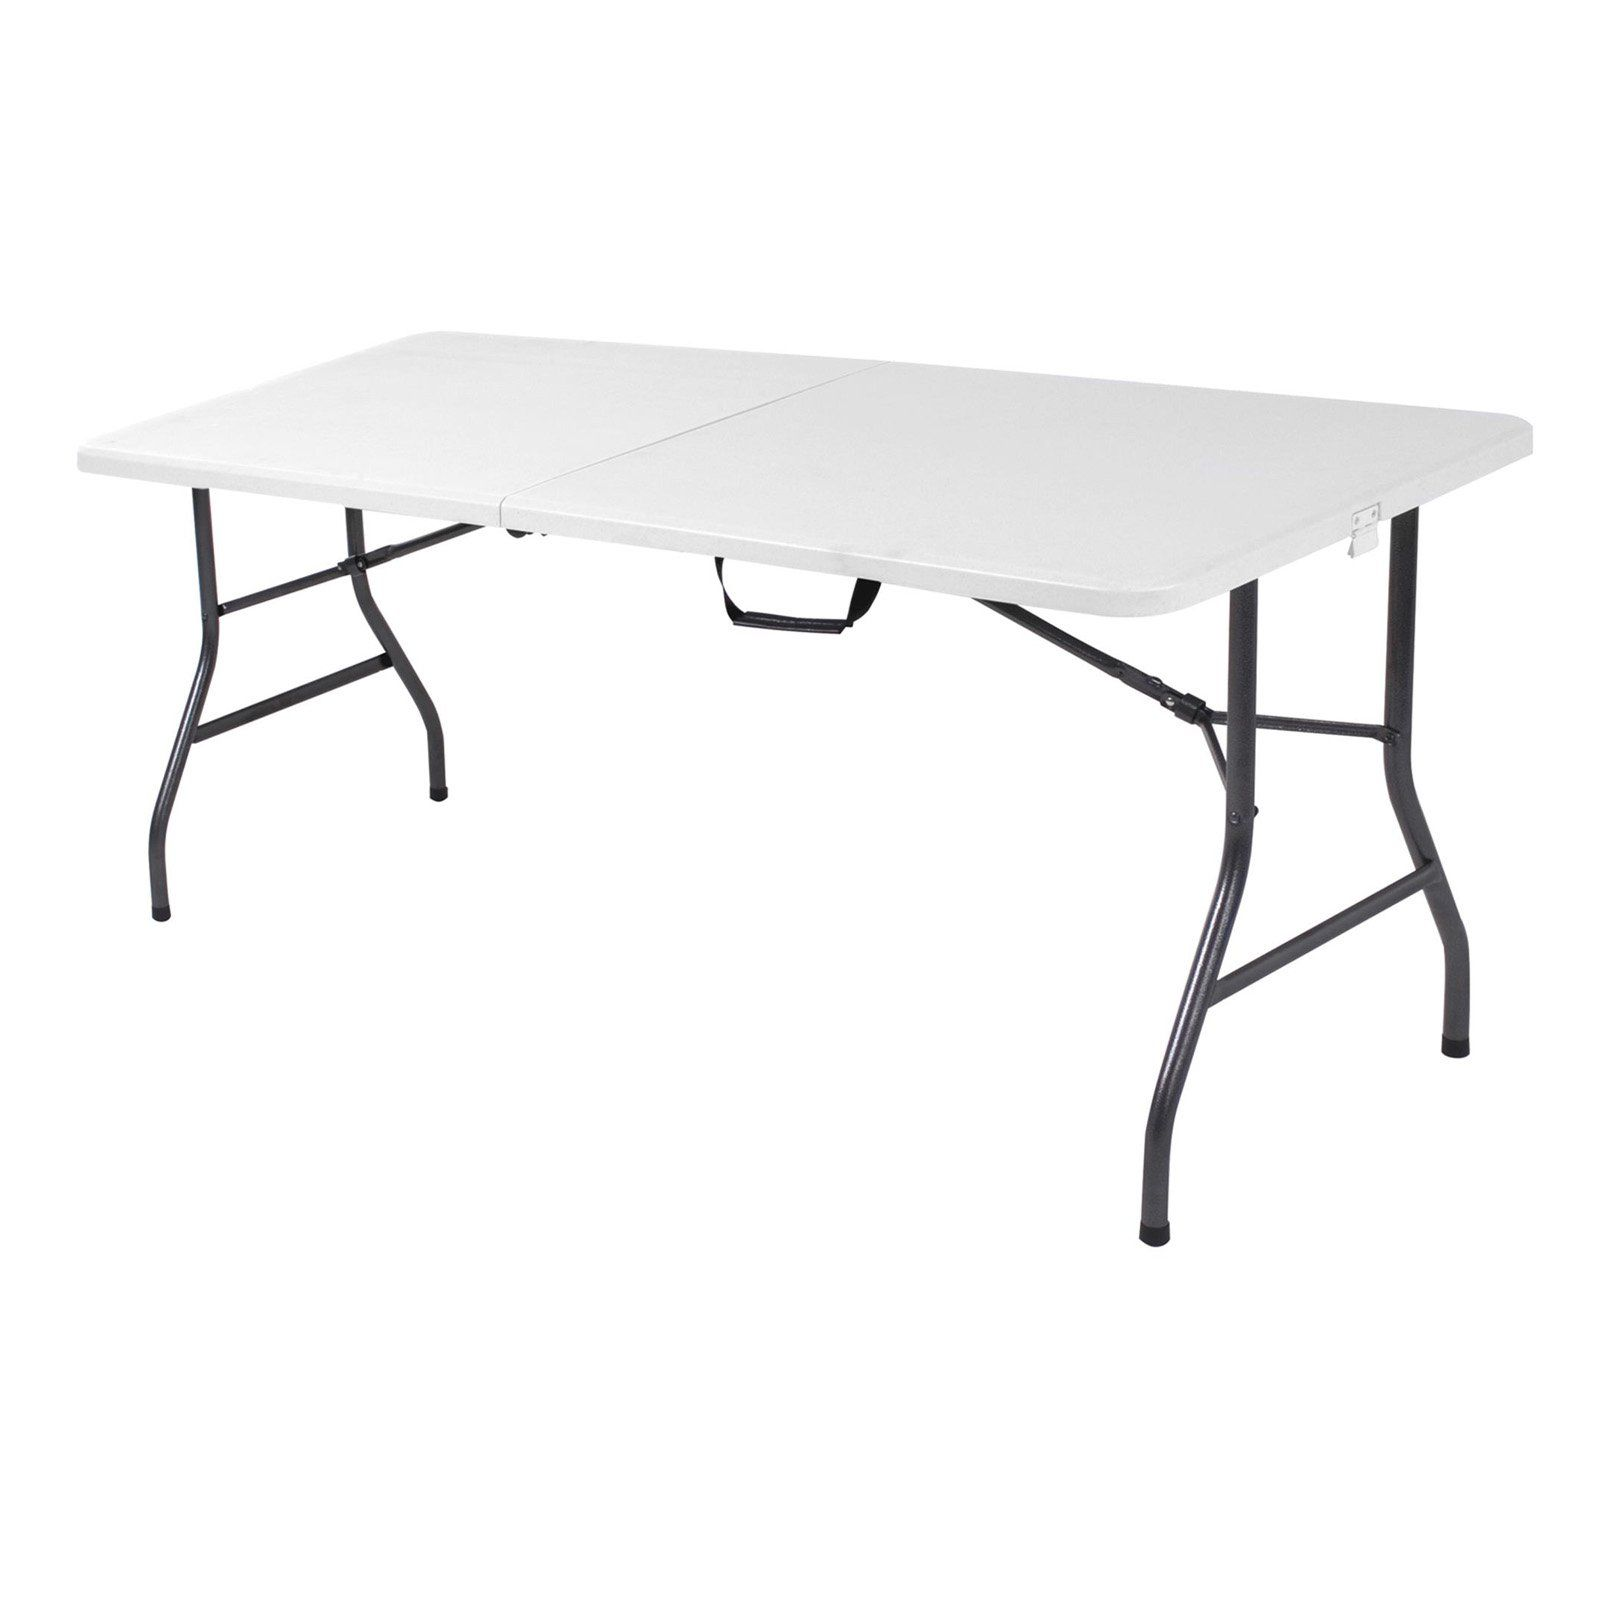 Cosco 6 Ft Centerfold Blow Molded Folding Table White Speckle Folding Table Table